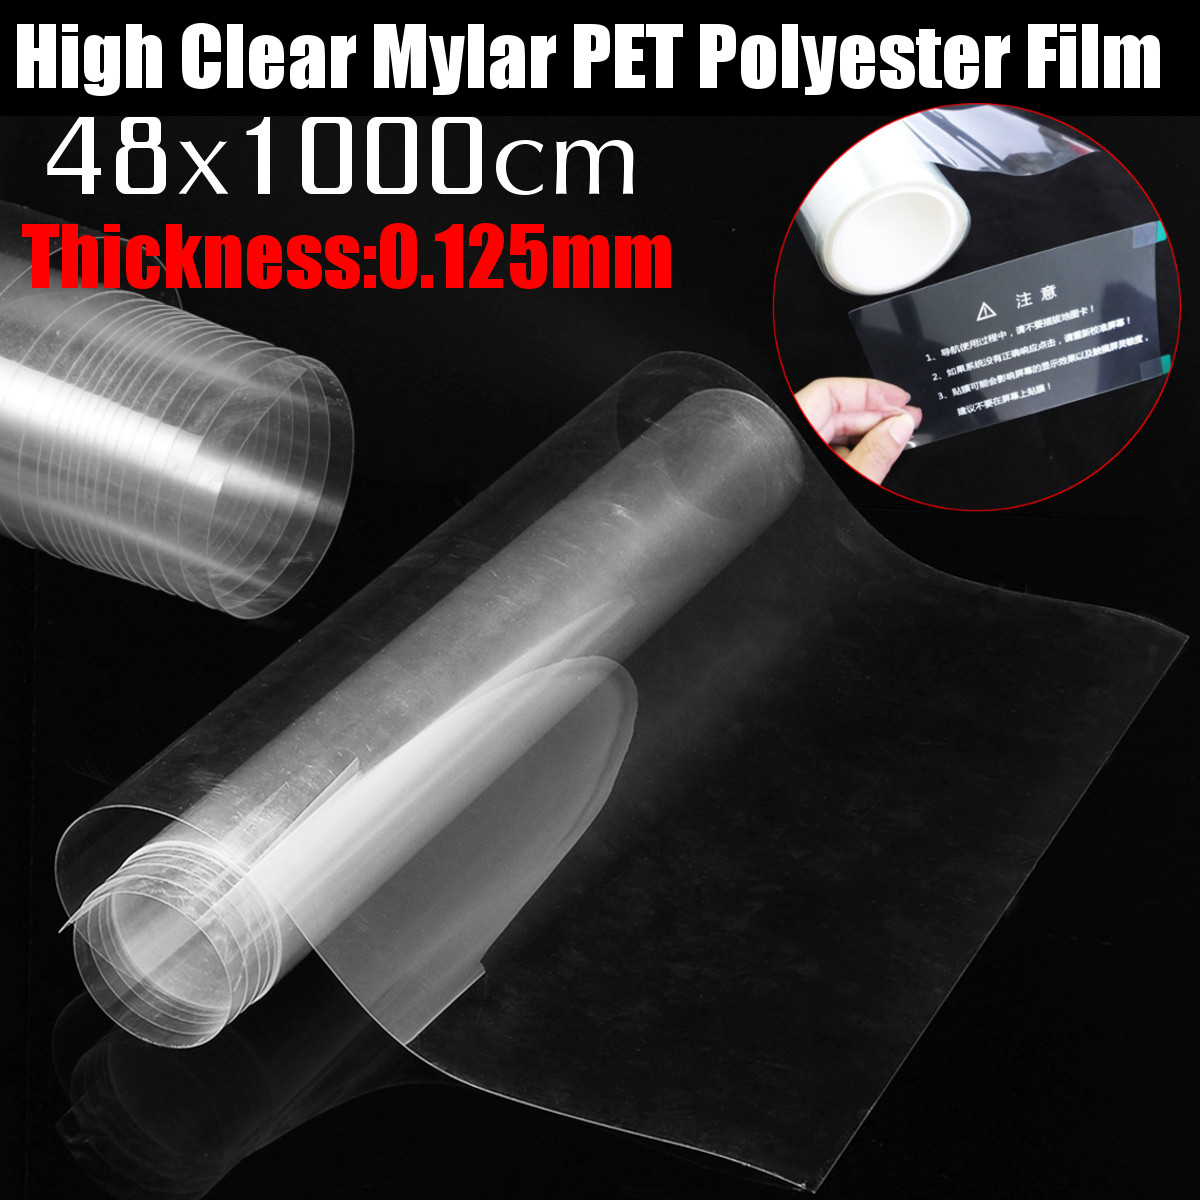 48x1000cm Airbrush Stencil Mylar Film Sheet PET Polyester Painting 0.125mm Thick Airbrush Stencil Mylar Film Sheet PET Polyester